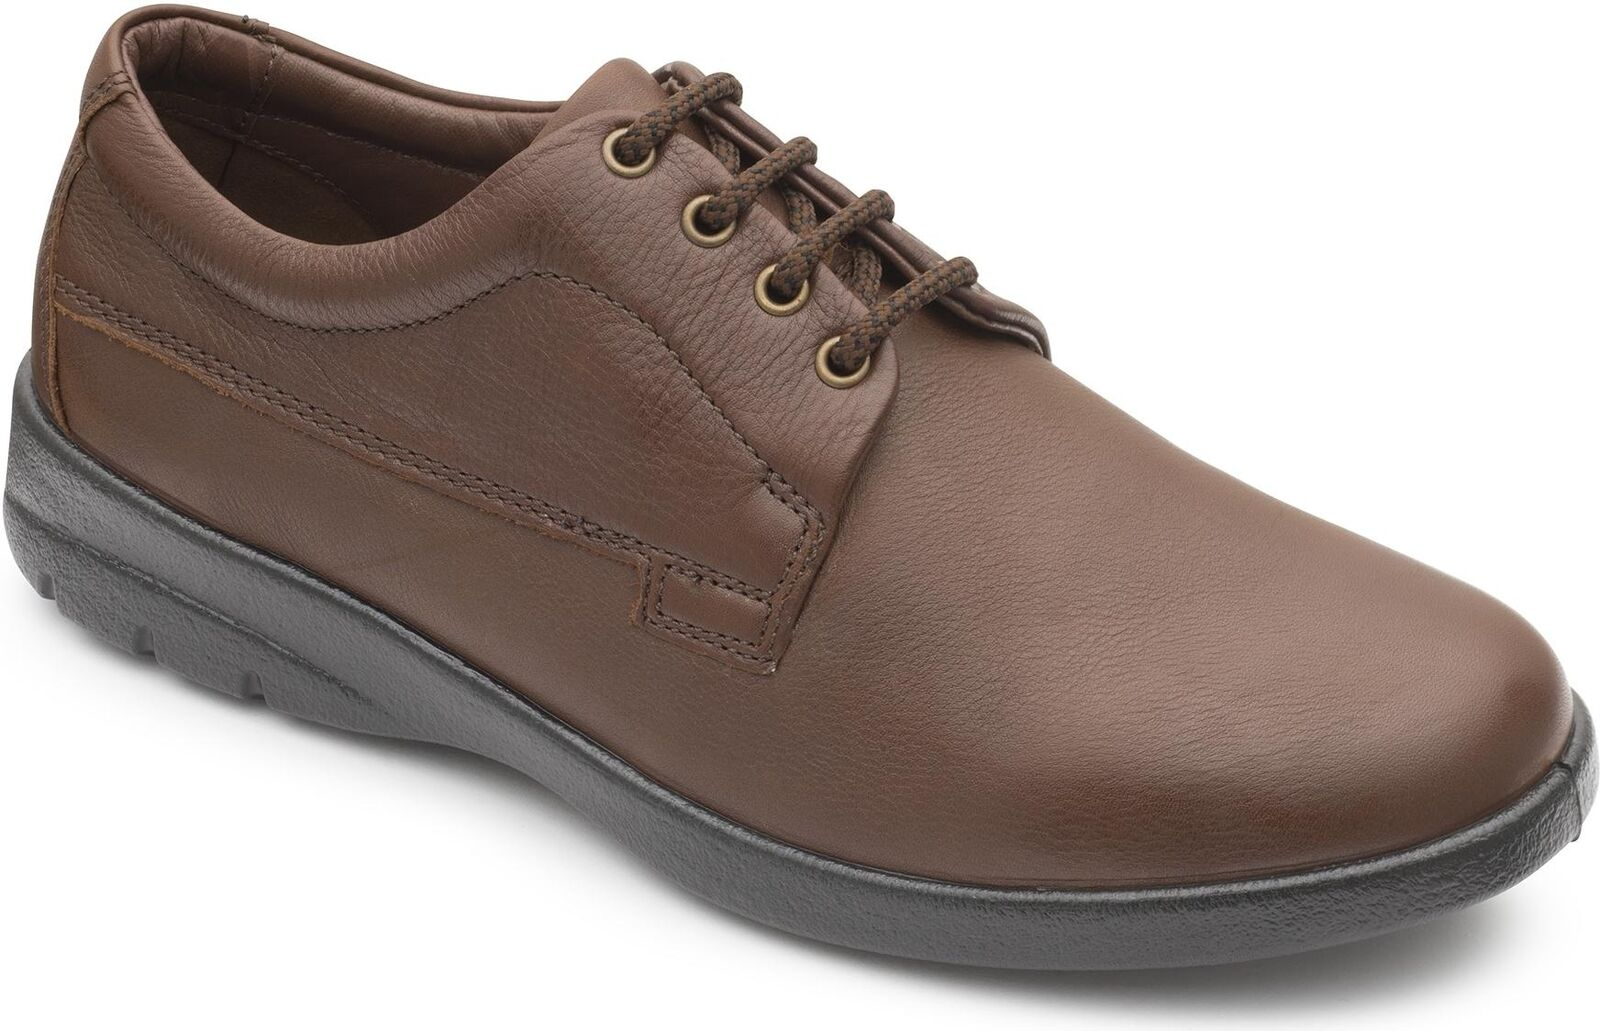 Padders LUNAR Mens Leather Wide Dual Fit (G H) Lace Up Comfort shoes Dark Tan